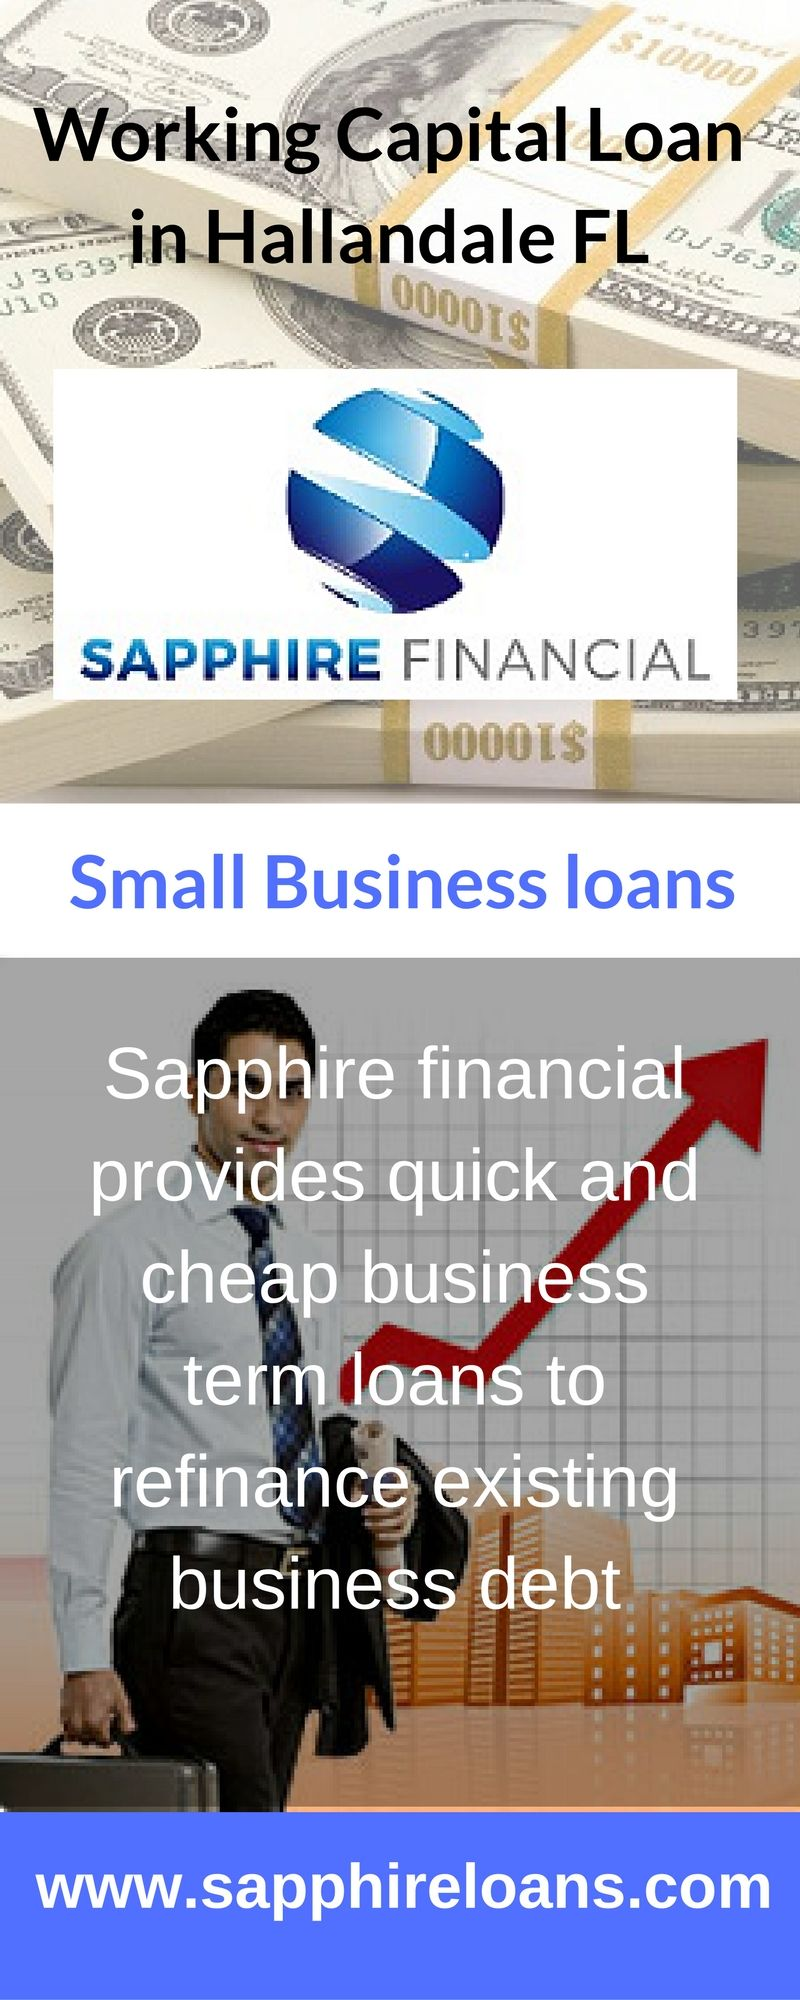 Working Capital Loan Line Of Credit Loans Small Business Loans Sapphire Financial Small Business Loans